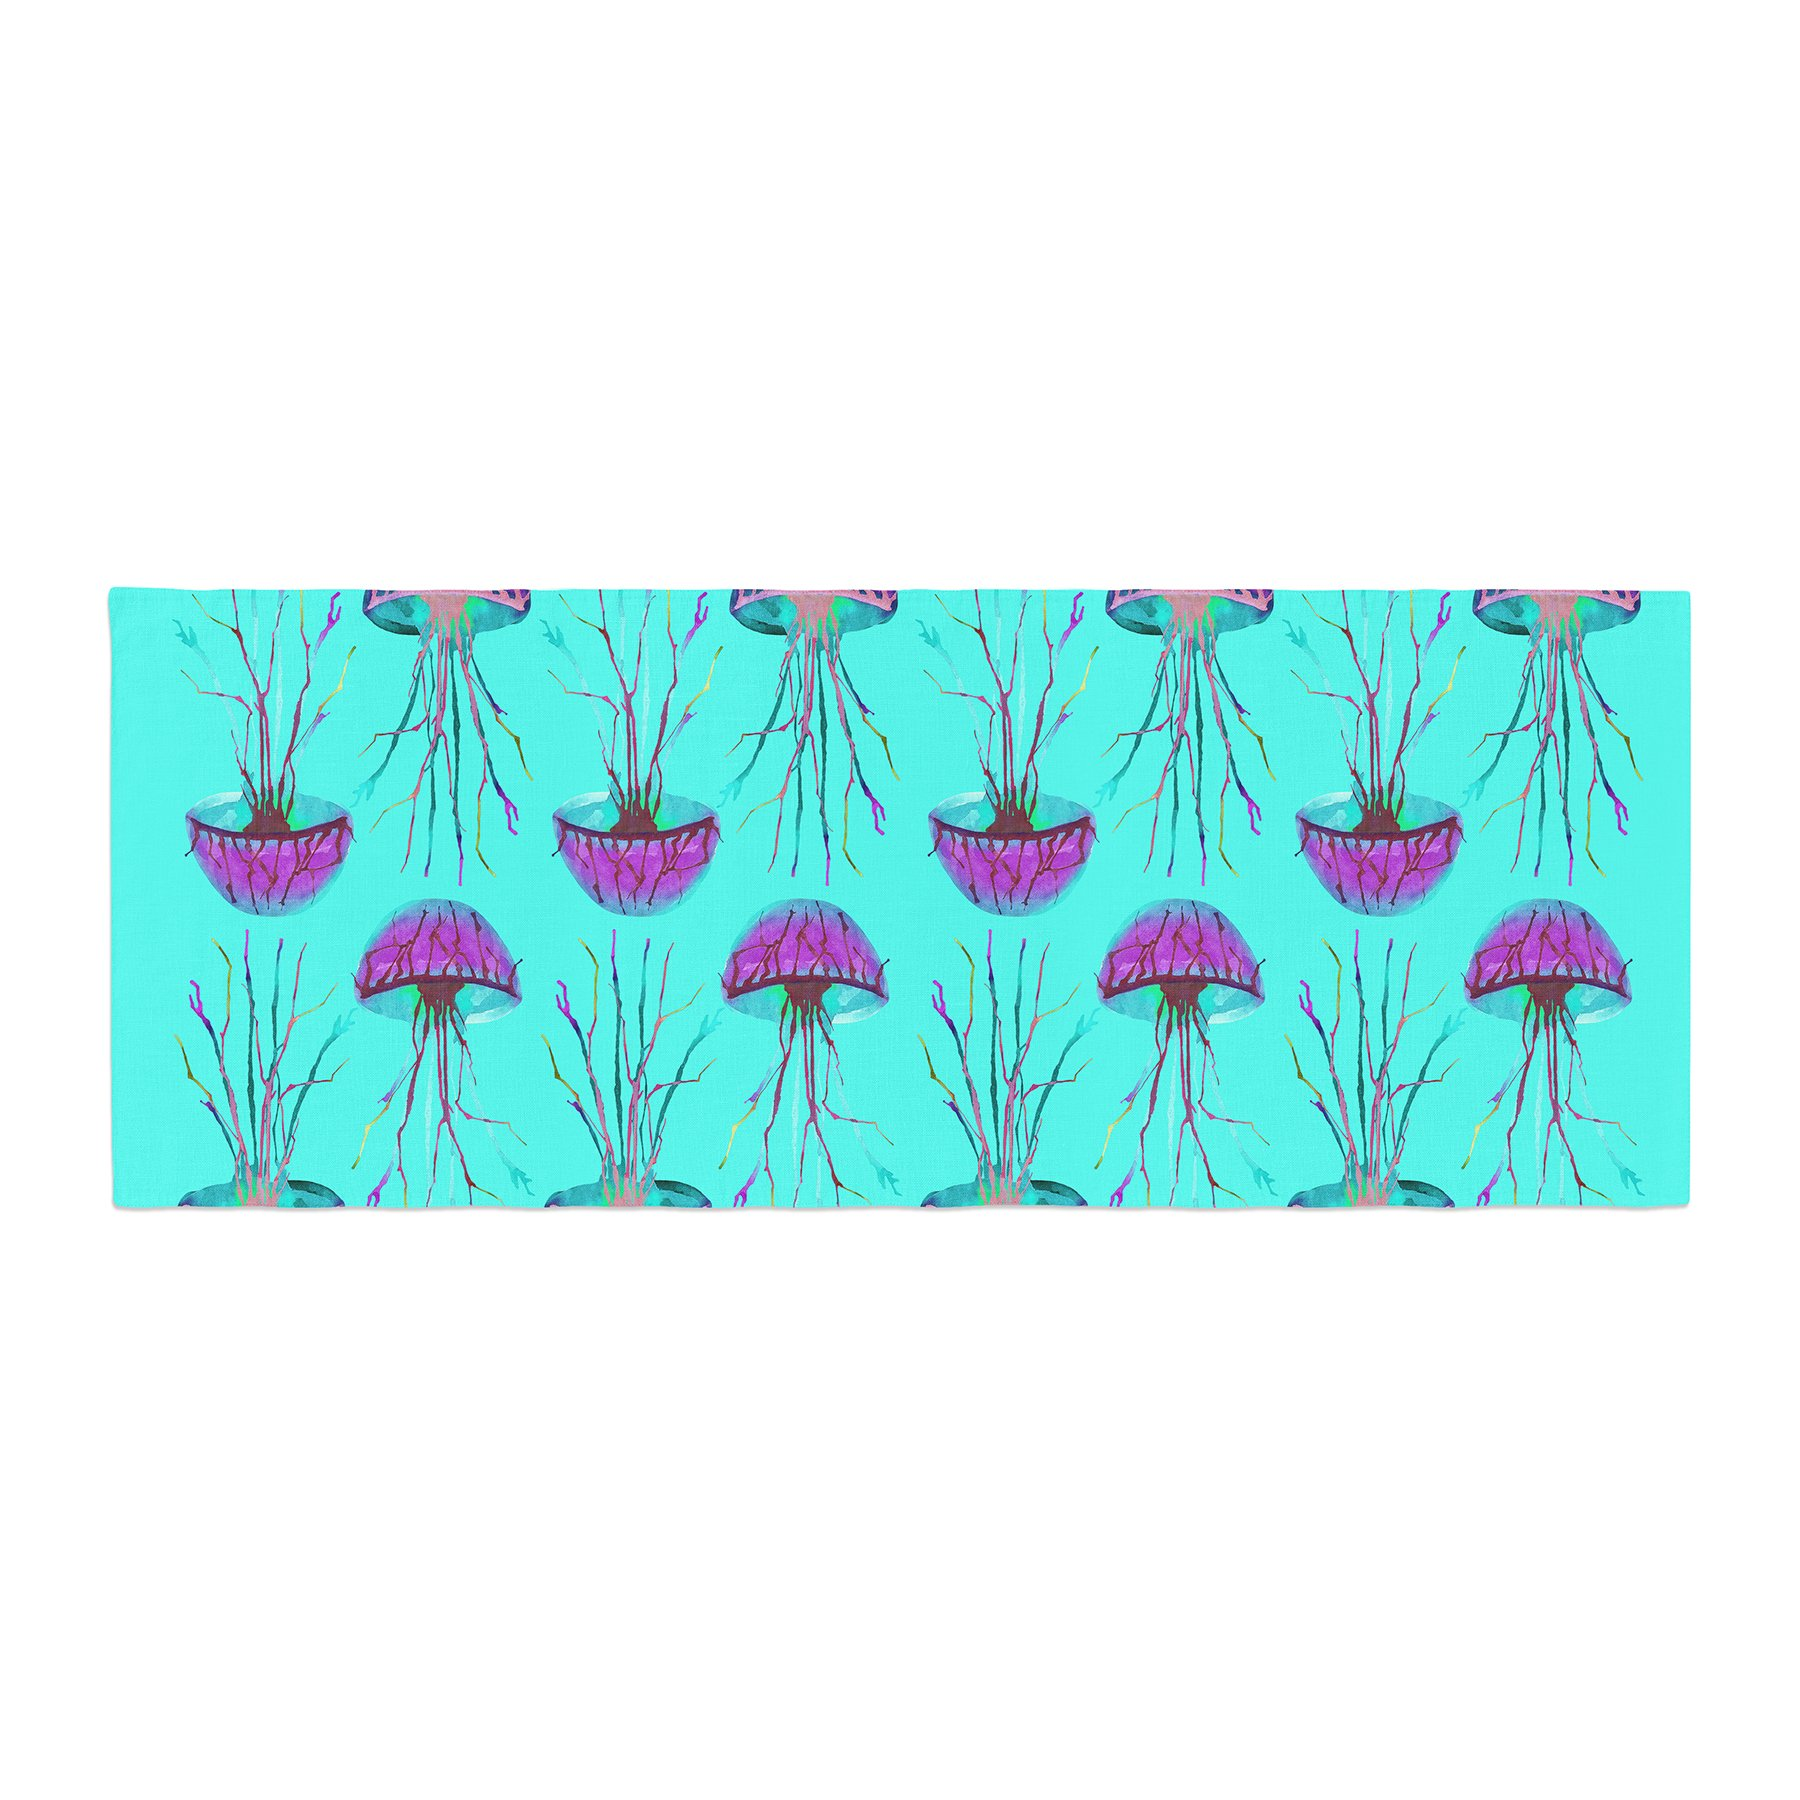 Kess InHouse Ivan Joh Turquoise Dance Teal Purple Bed Runner, 34'' x 86''